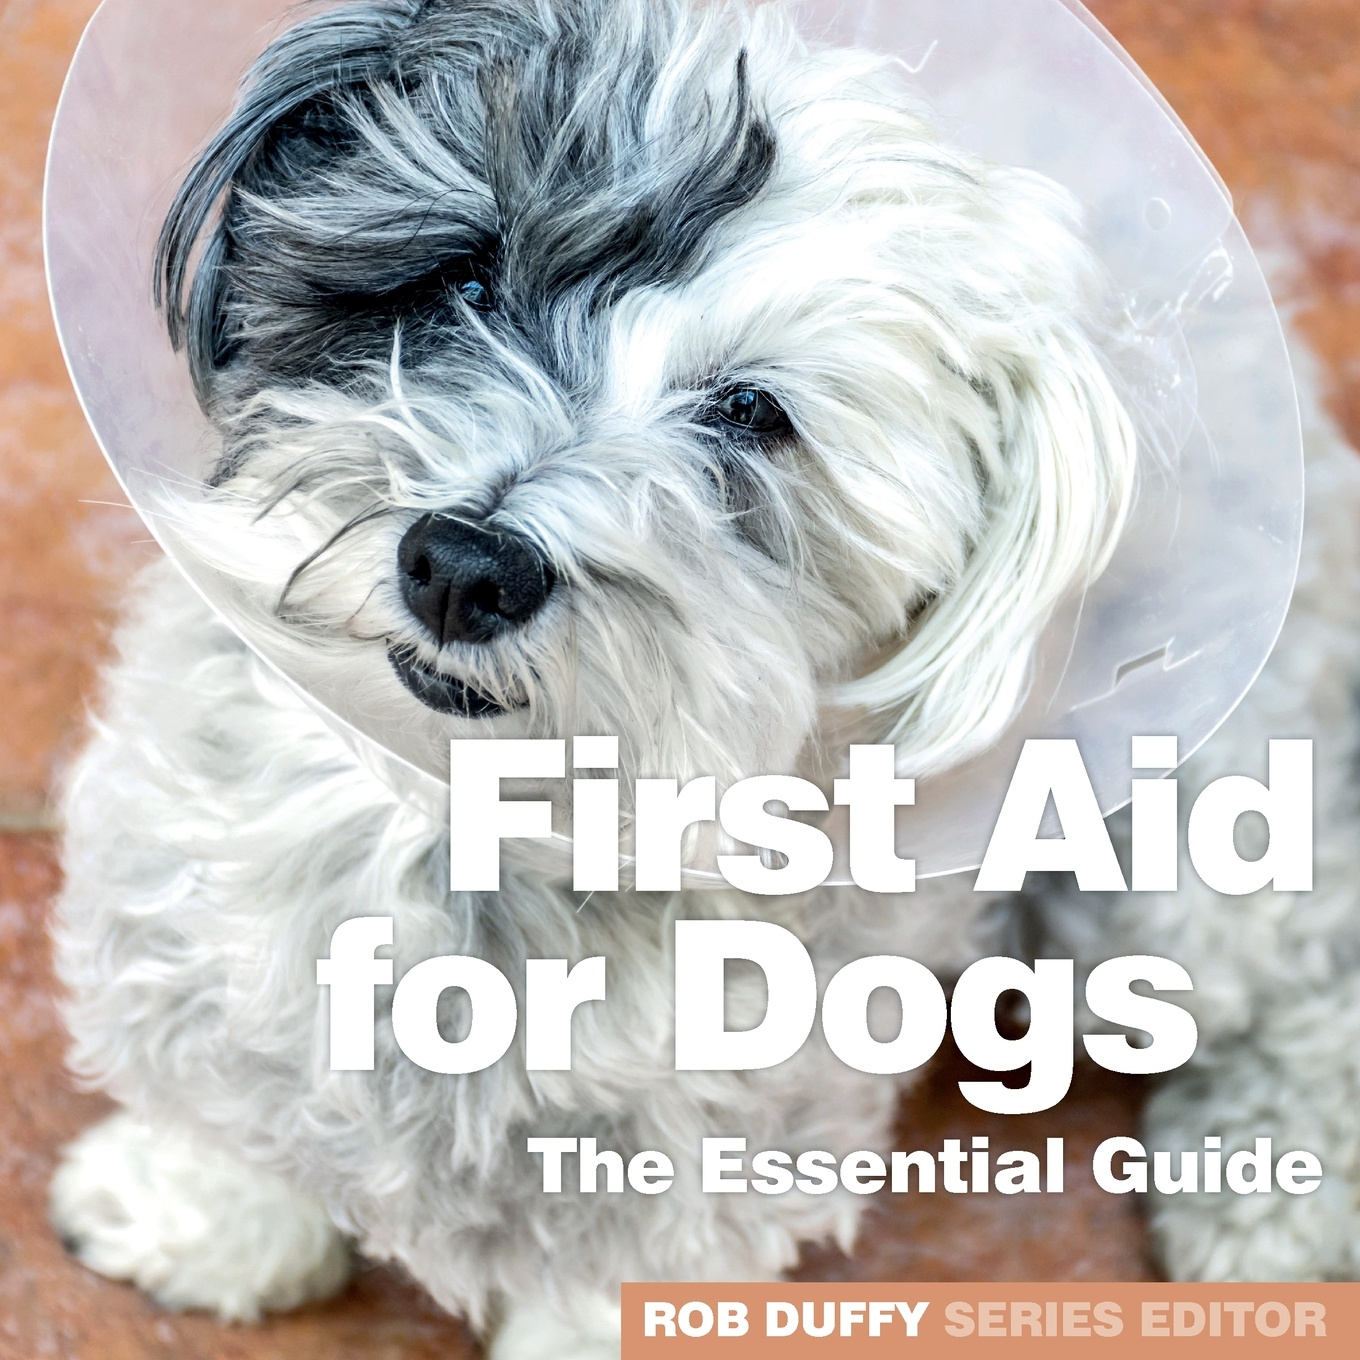 Фото - First Aid for Dogs. The Essential Guide левчук и костюченко м назаров а first aid in case of accidents and emergency situations course book